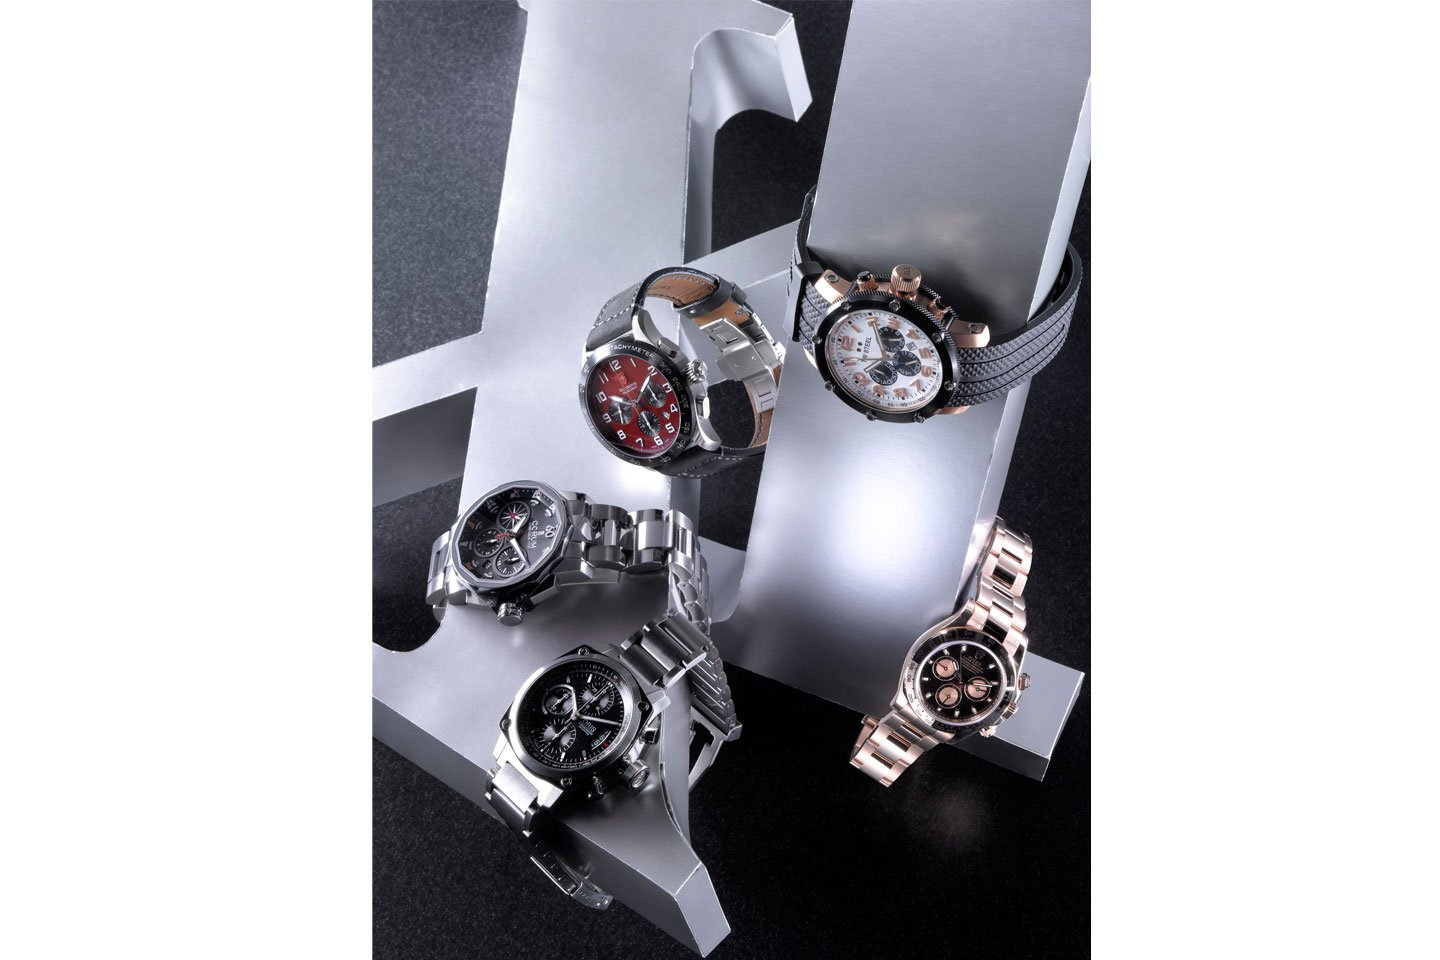 watches diver multi mens invicta quartz gq store steel products aaceqfwd watch nz pro stainless